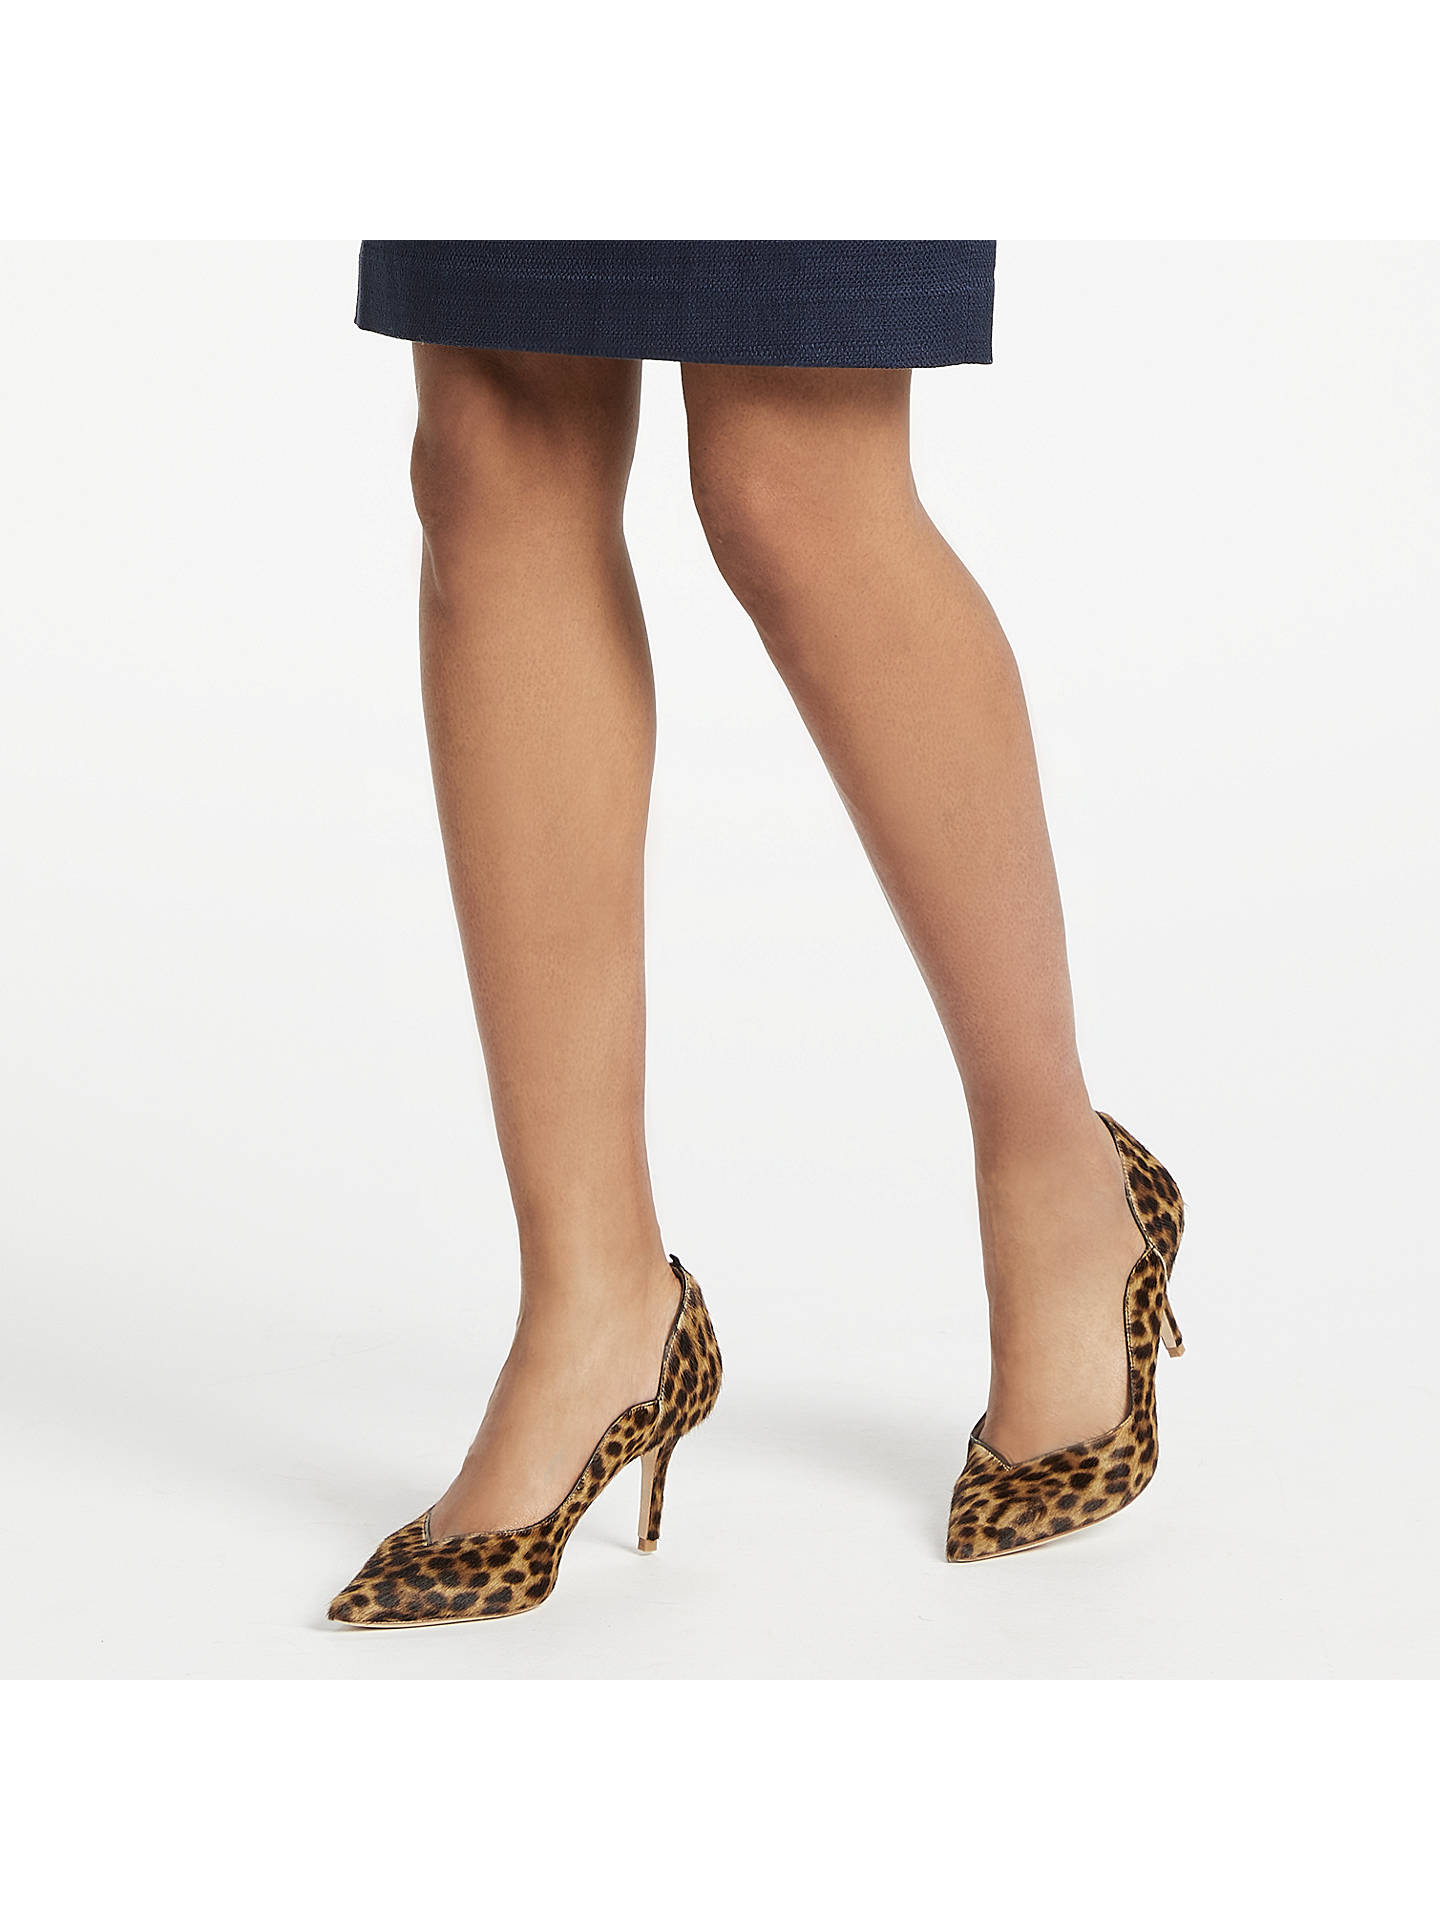 Buy Boden Madison Stiletto Heeled Court Shoes, Leopard Leather, 4 Online at johnlewis.com